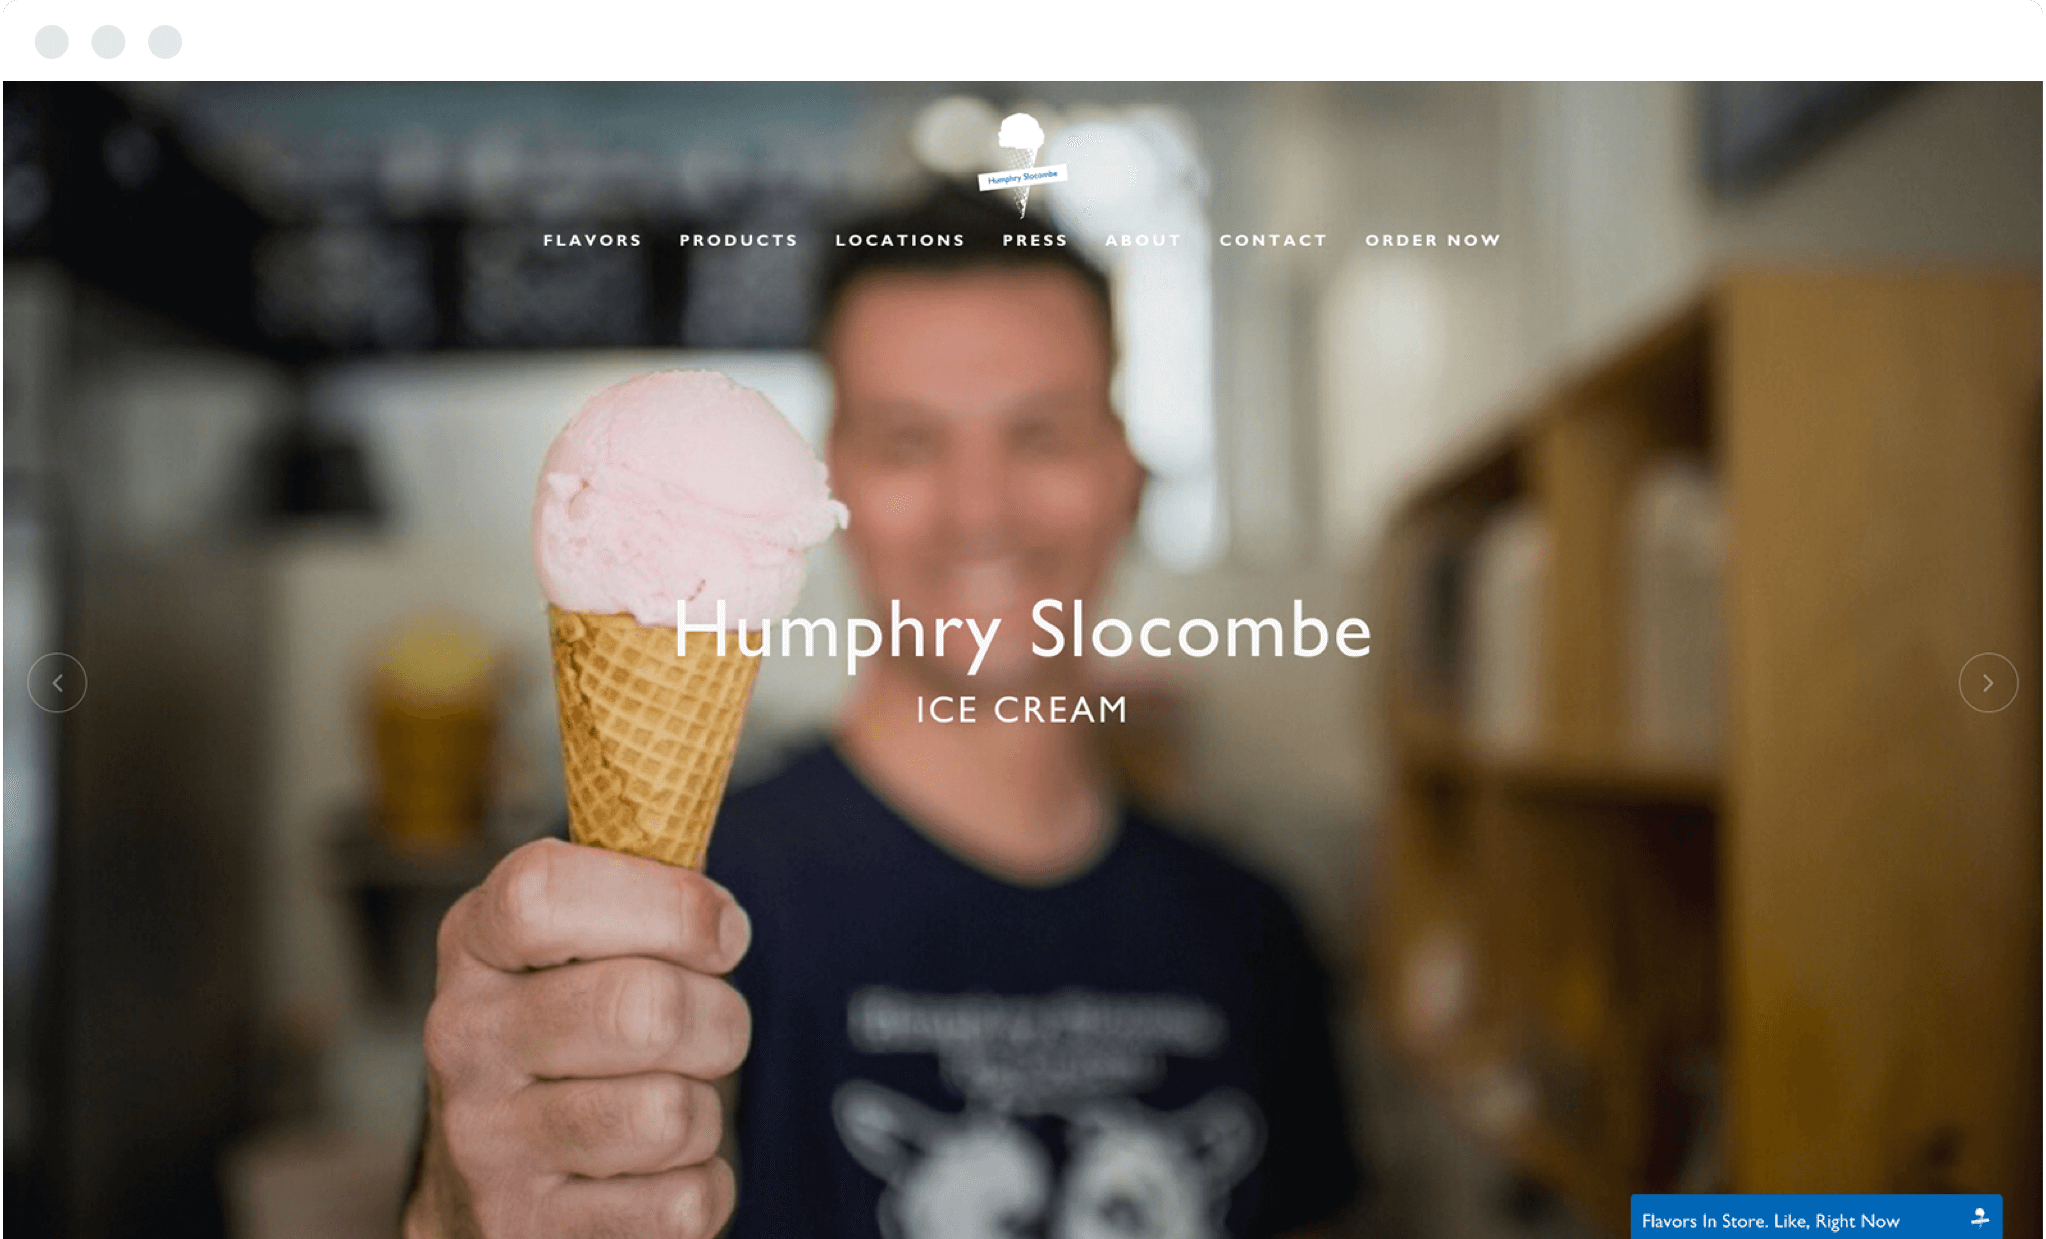 Humphry Slocombe Website